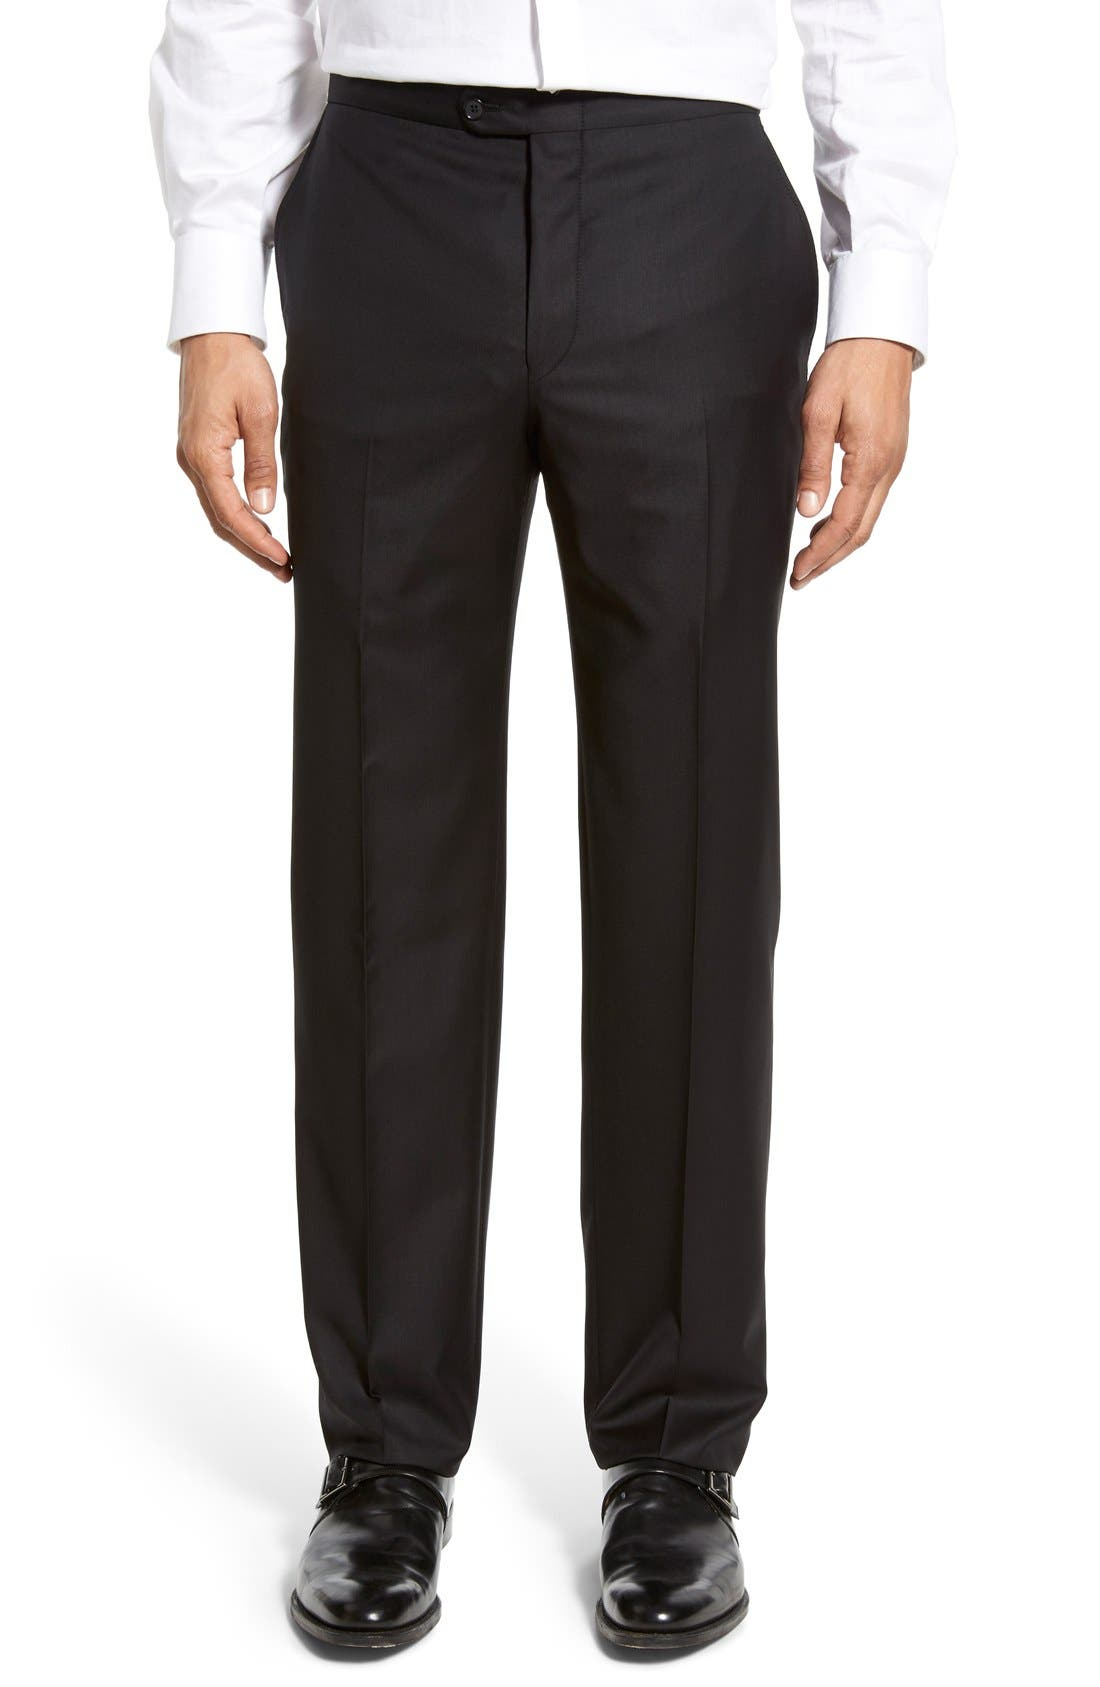 Alternate Image 1 Selected - Hickey Freeman Classic B Fit Flat Front Wool Formal Trousers